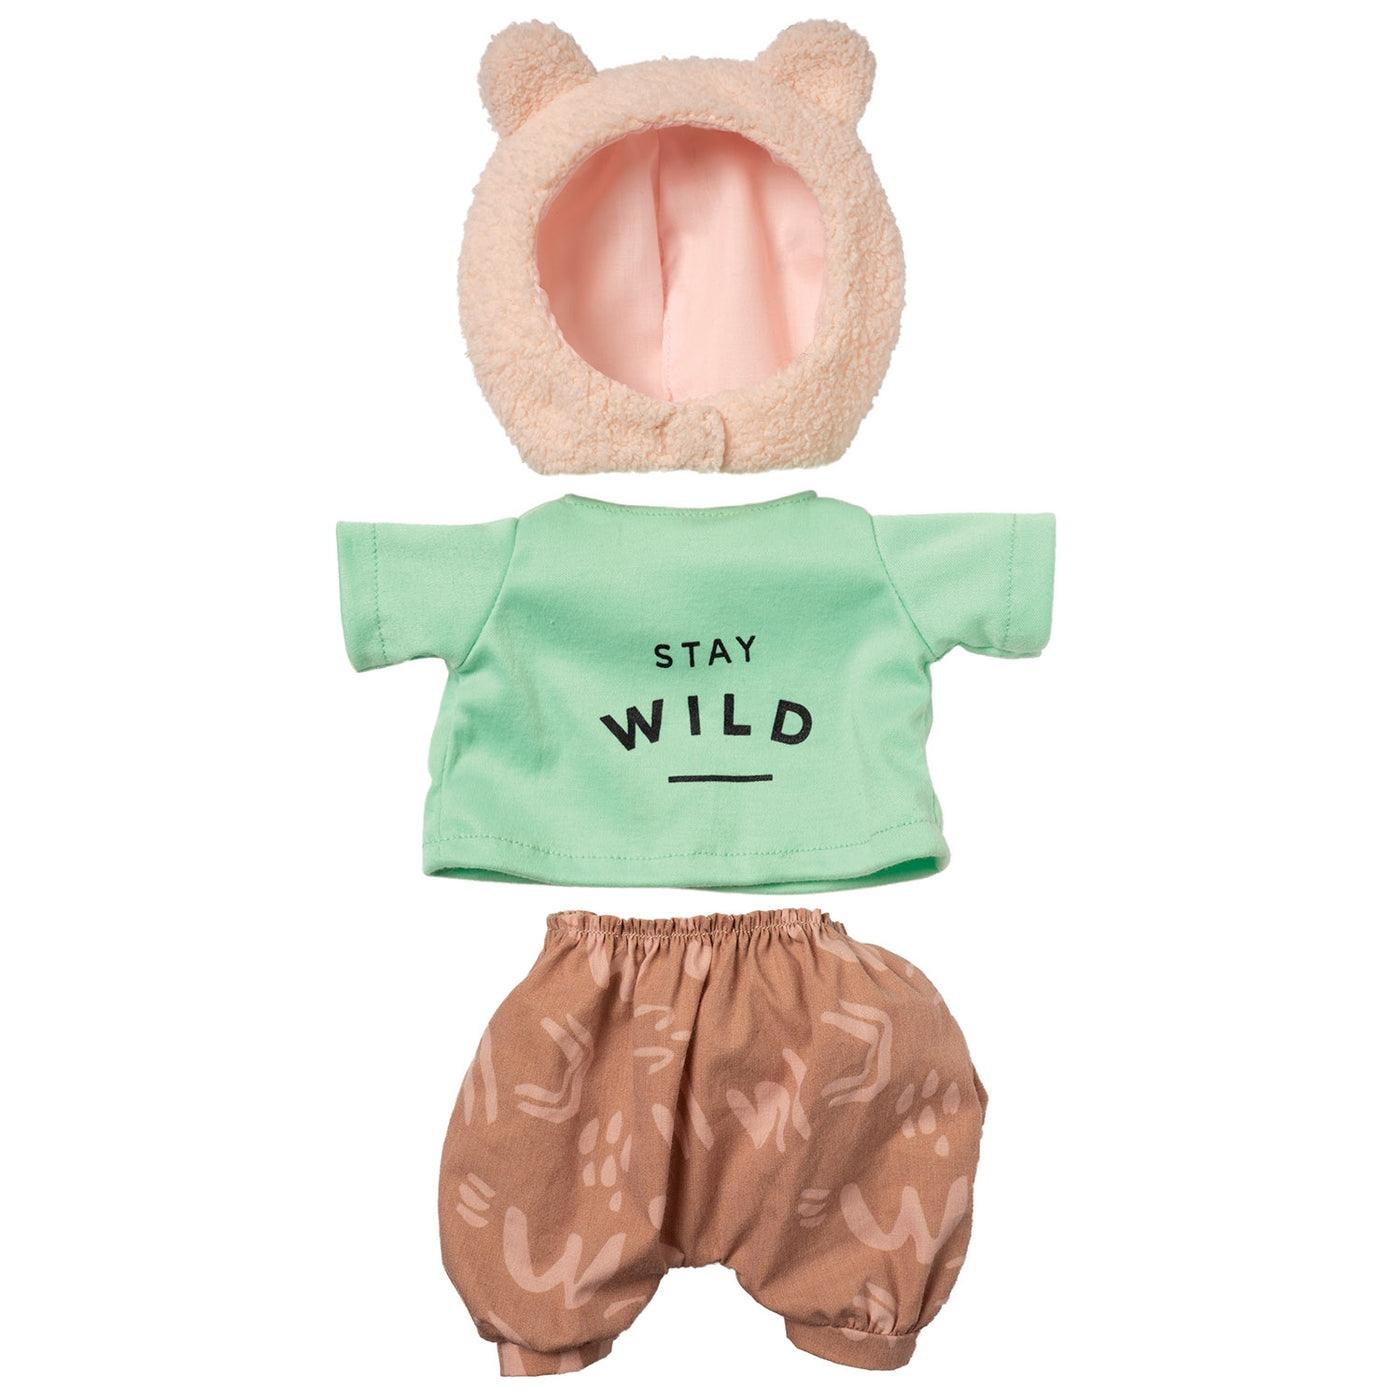 Baby Stella Stay Wild outfit - Manhattan Toy